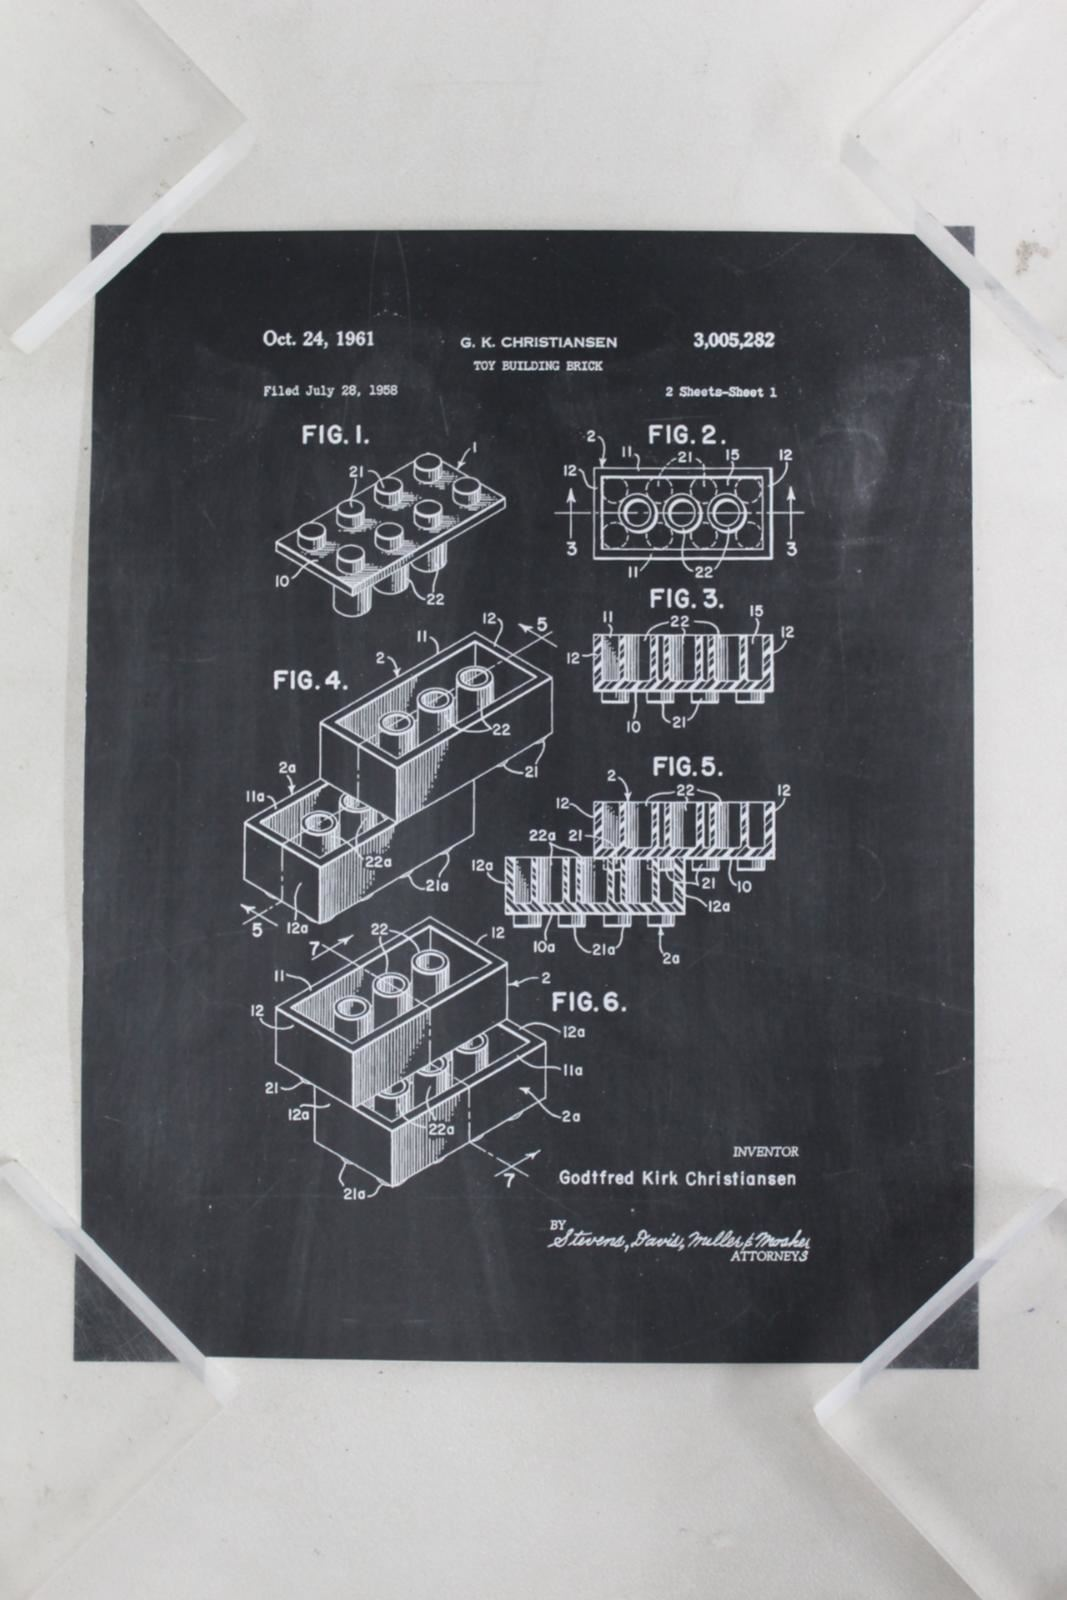 Toy-Building-Block-Lego-Patent-Chalkboard-Design-Poster-11x14-034-Quality-Print-NEW